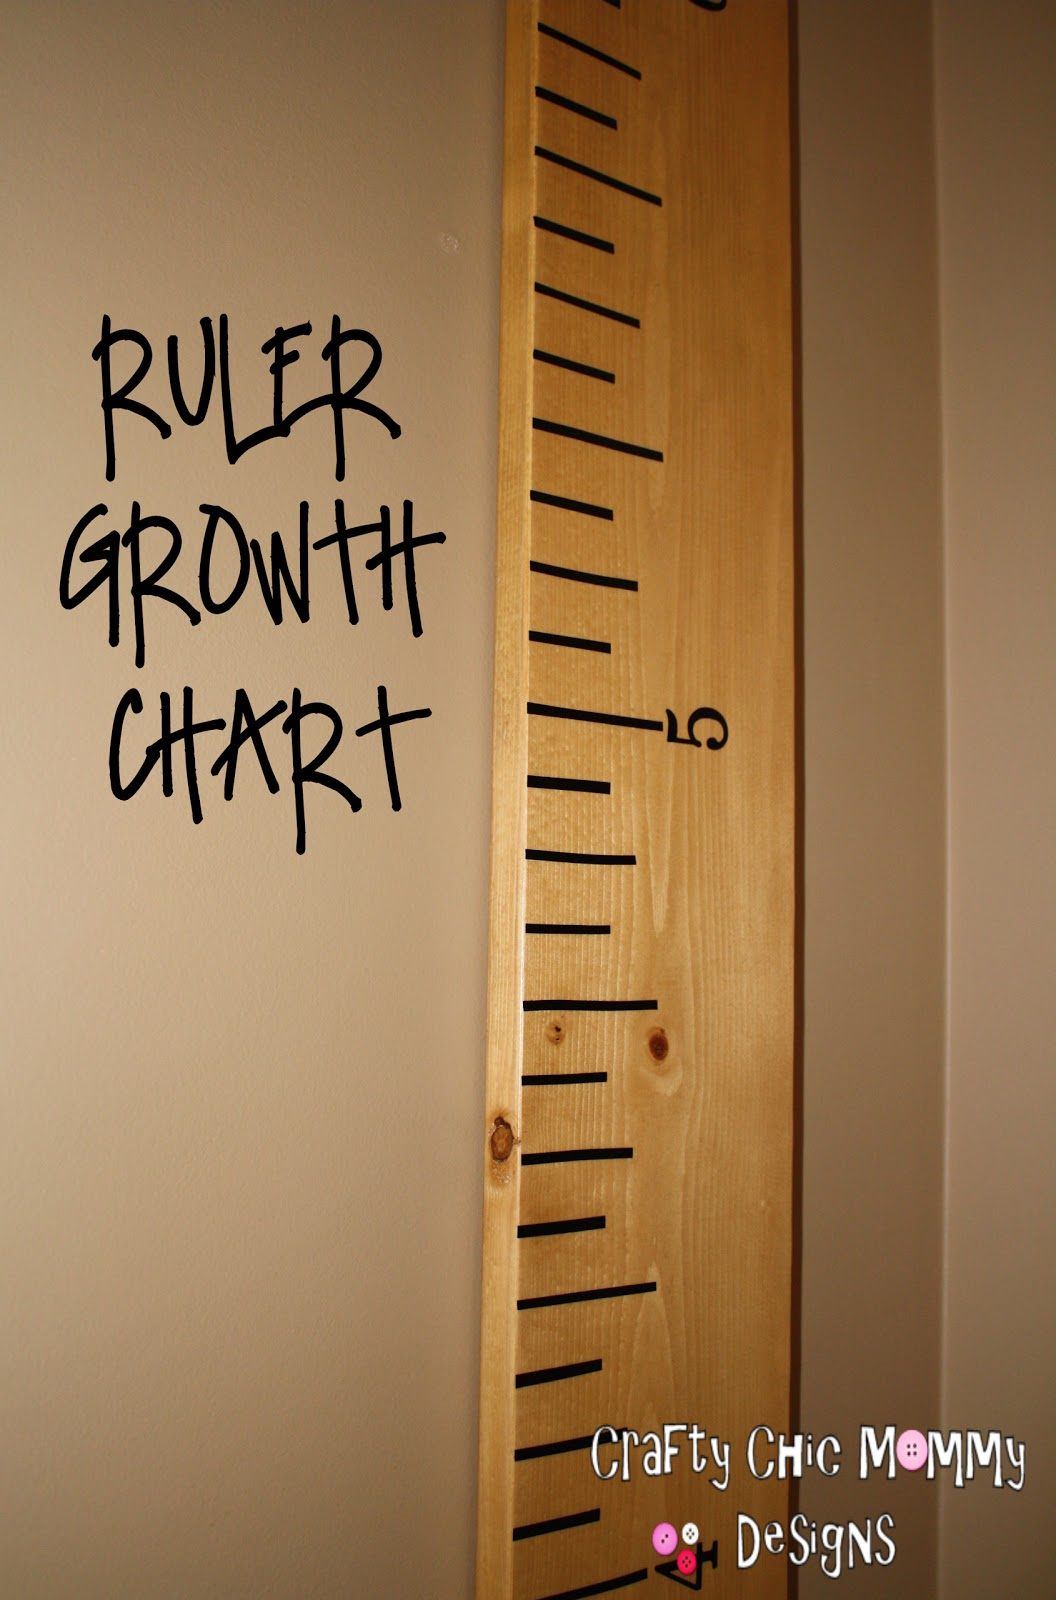 Crafty Chic Mommy P B K O Giant Ruler Growth Chart